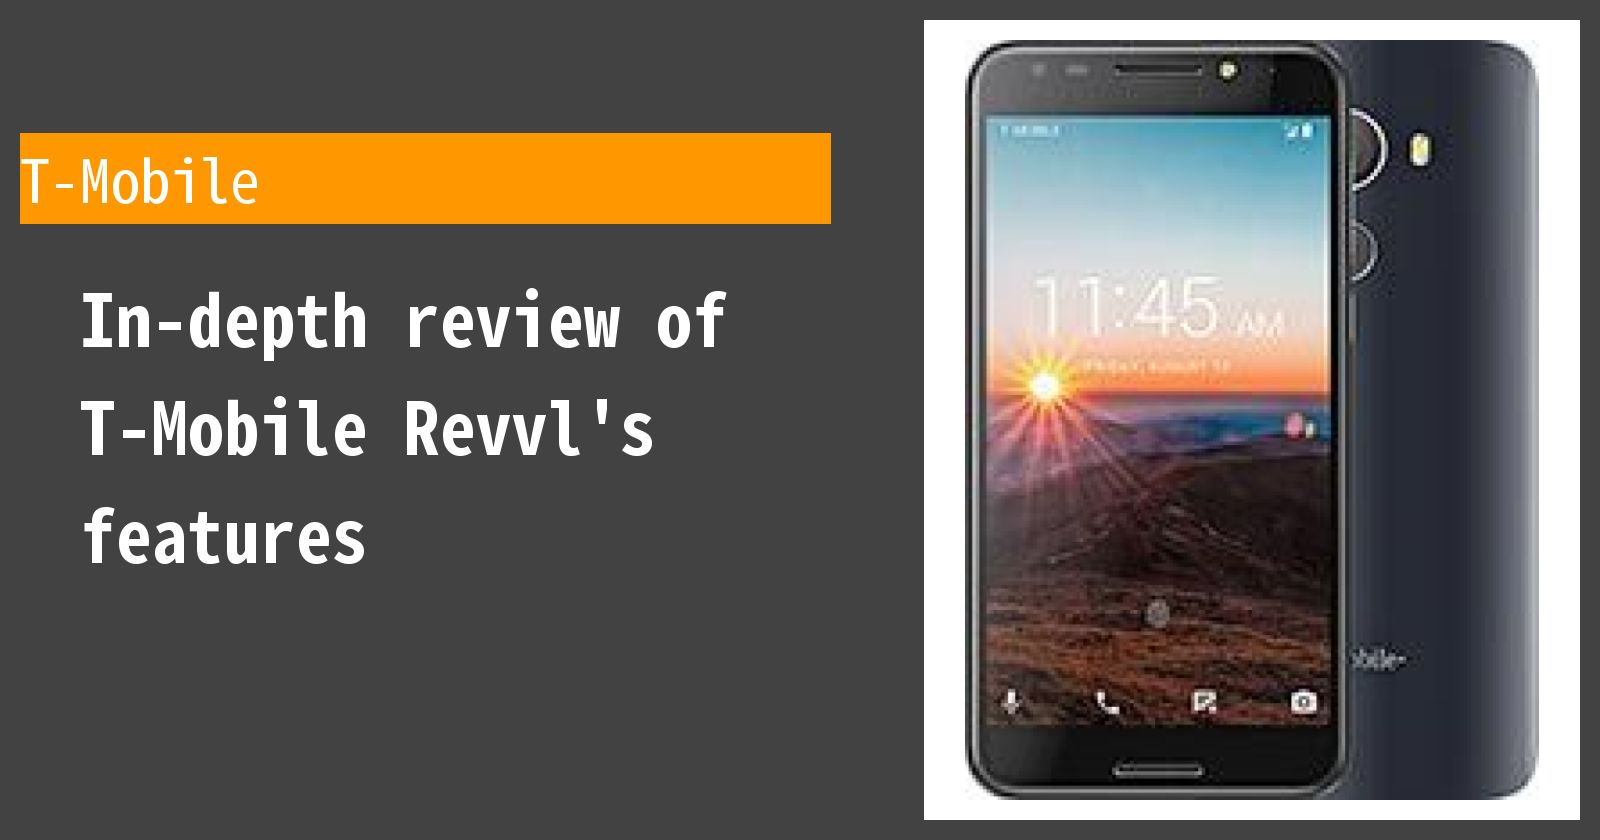 Review of T-Mobile Revvl  Thorough explanation of the pros and cons